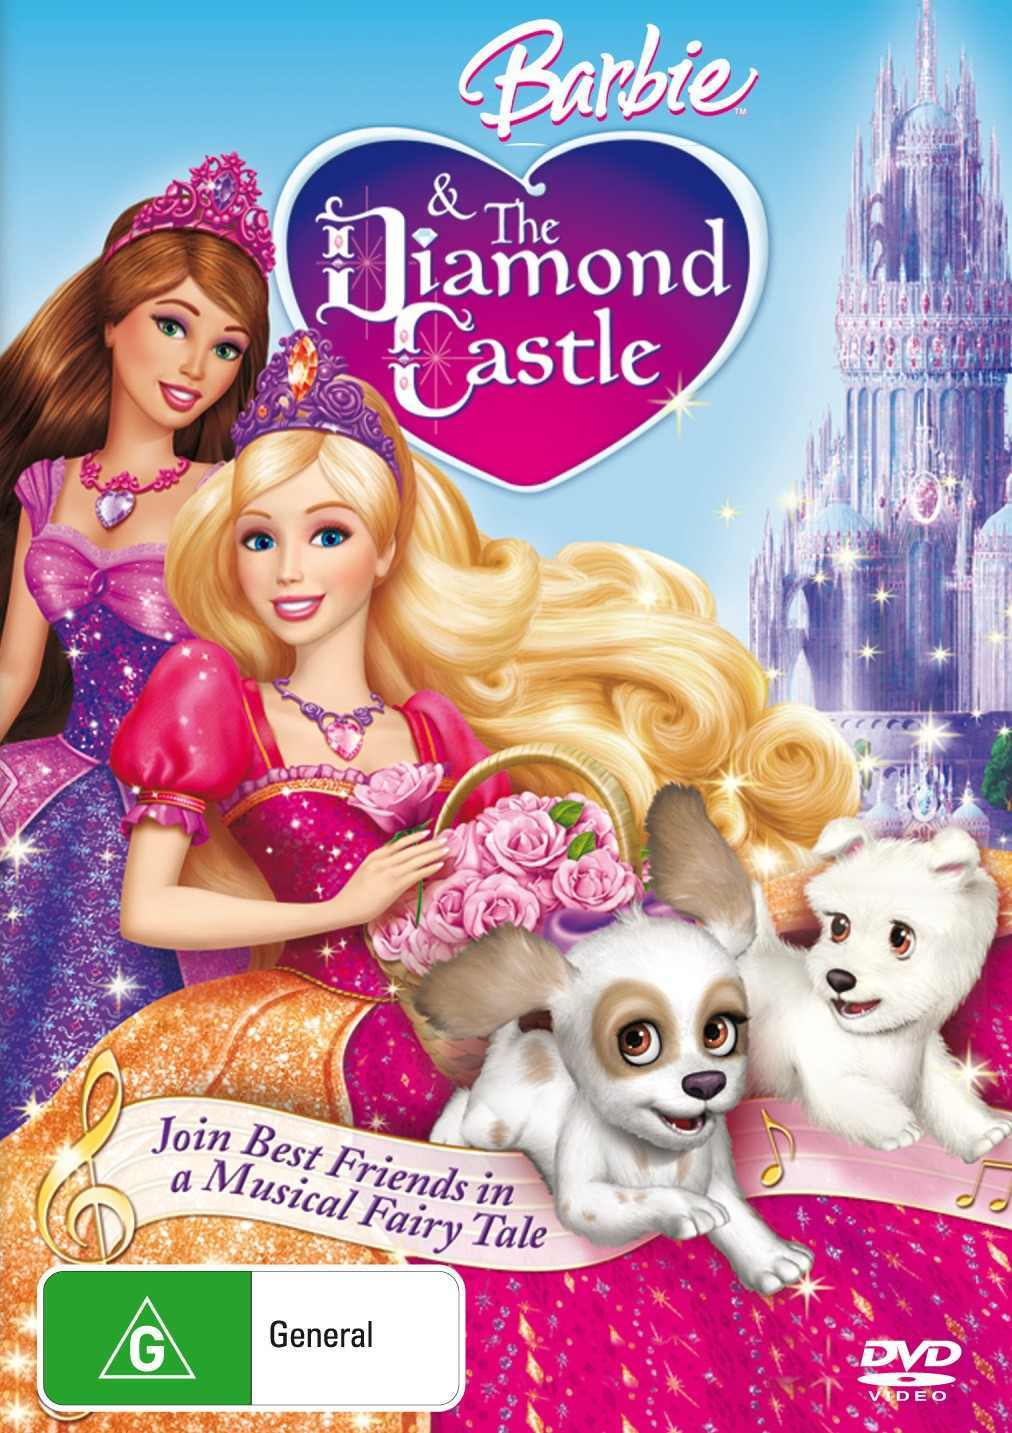 Favorite DVD cover? Poll Results - Barbie Movies - Fanpop